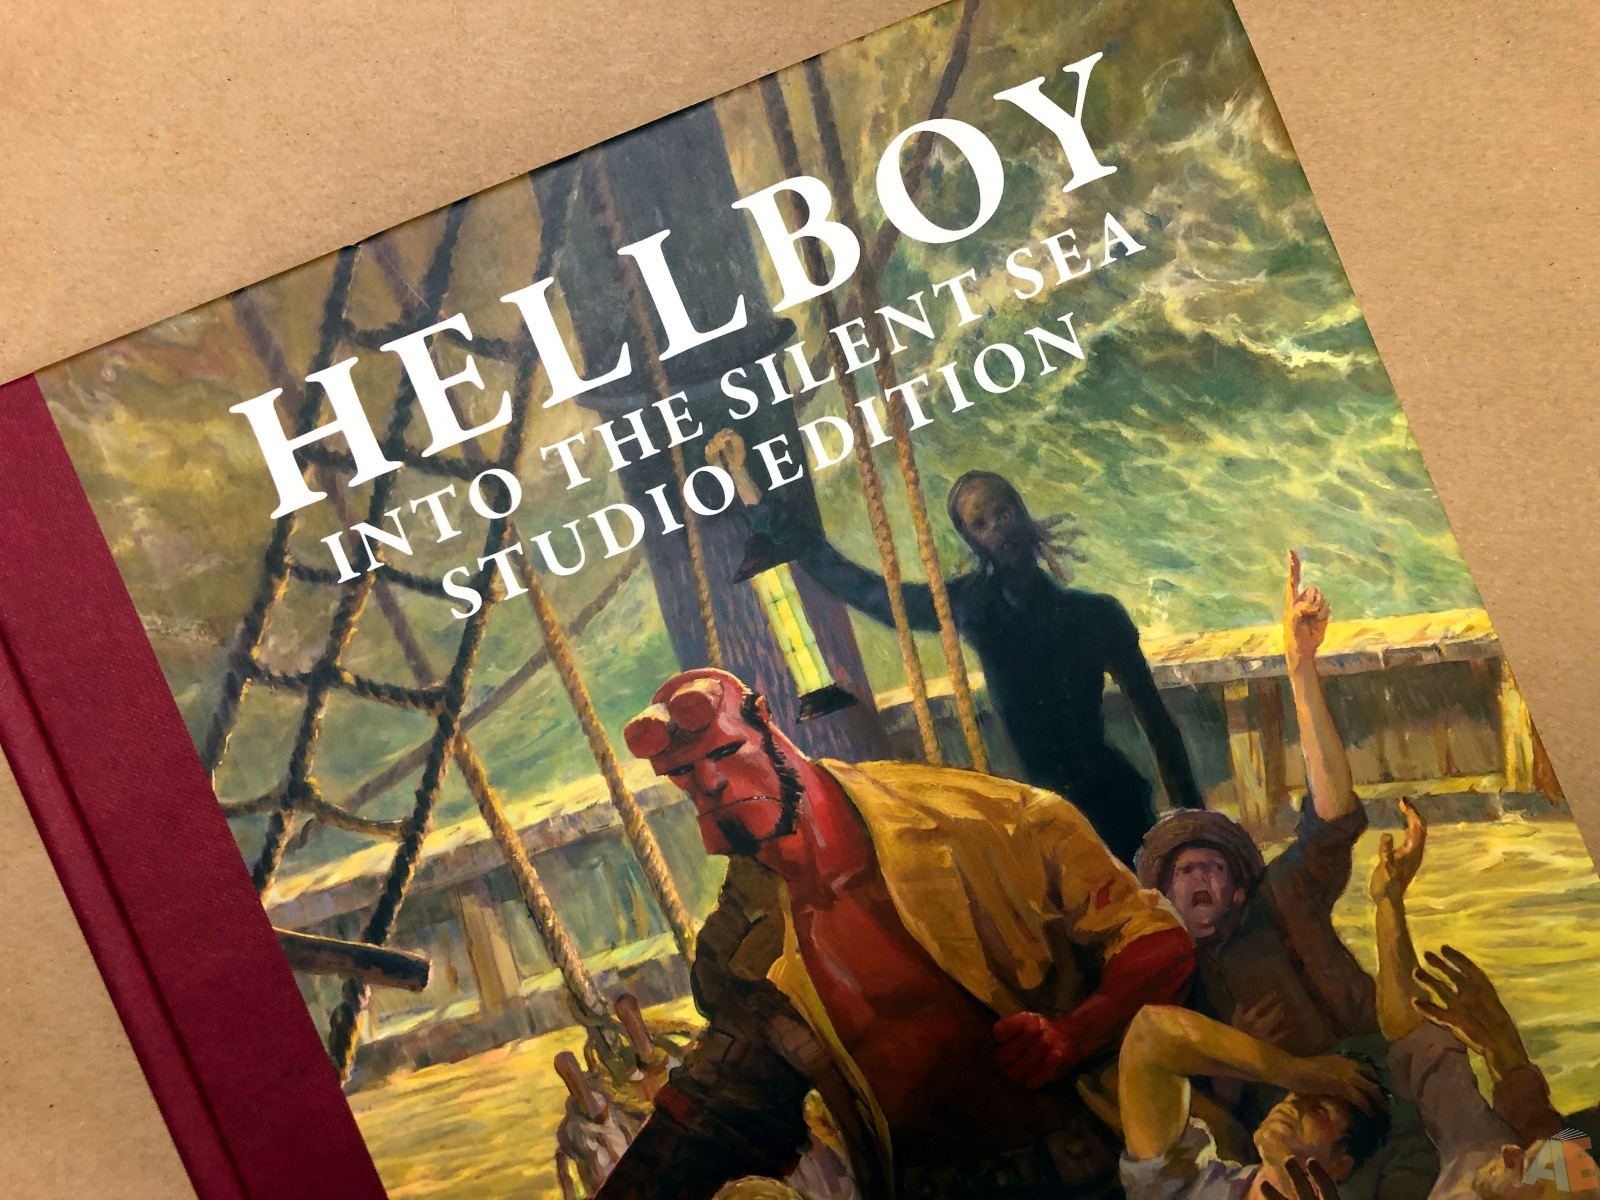 Hellboy: Into The Silent Sea Studio Edition 46